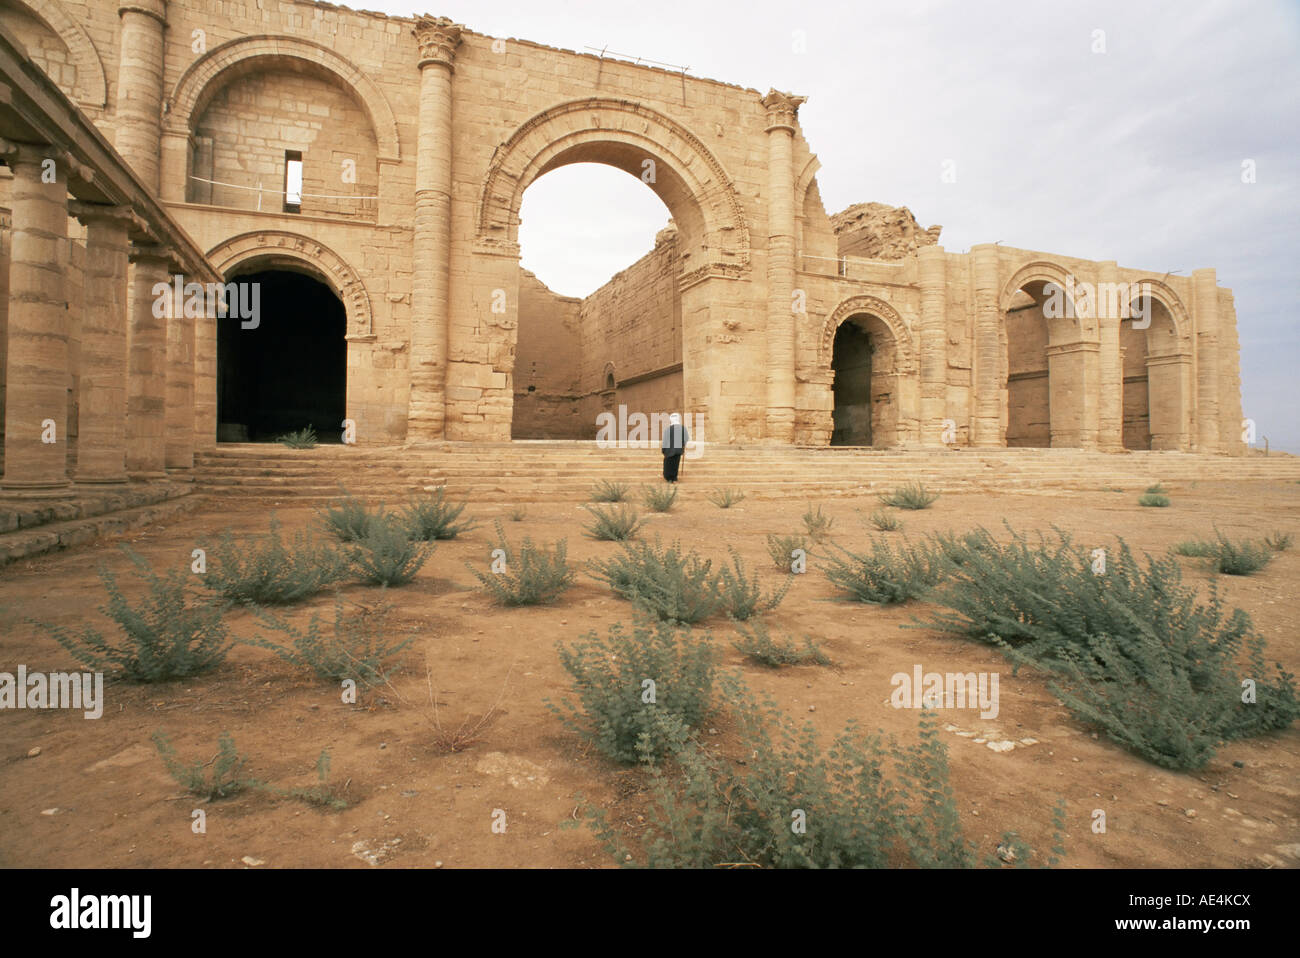 Iwan group, Hatra, UNESCO World Heritage Site, Iraq, Middle East - Stock Image